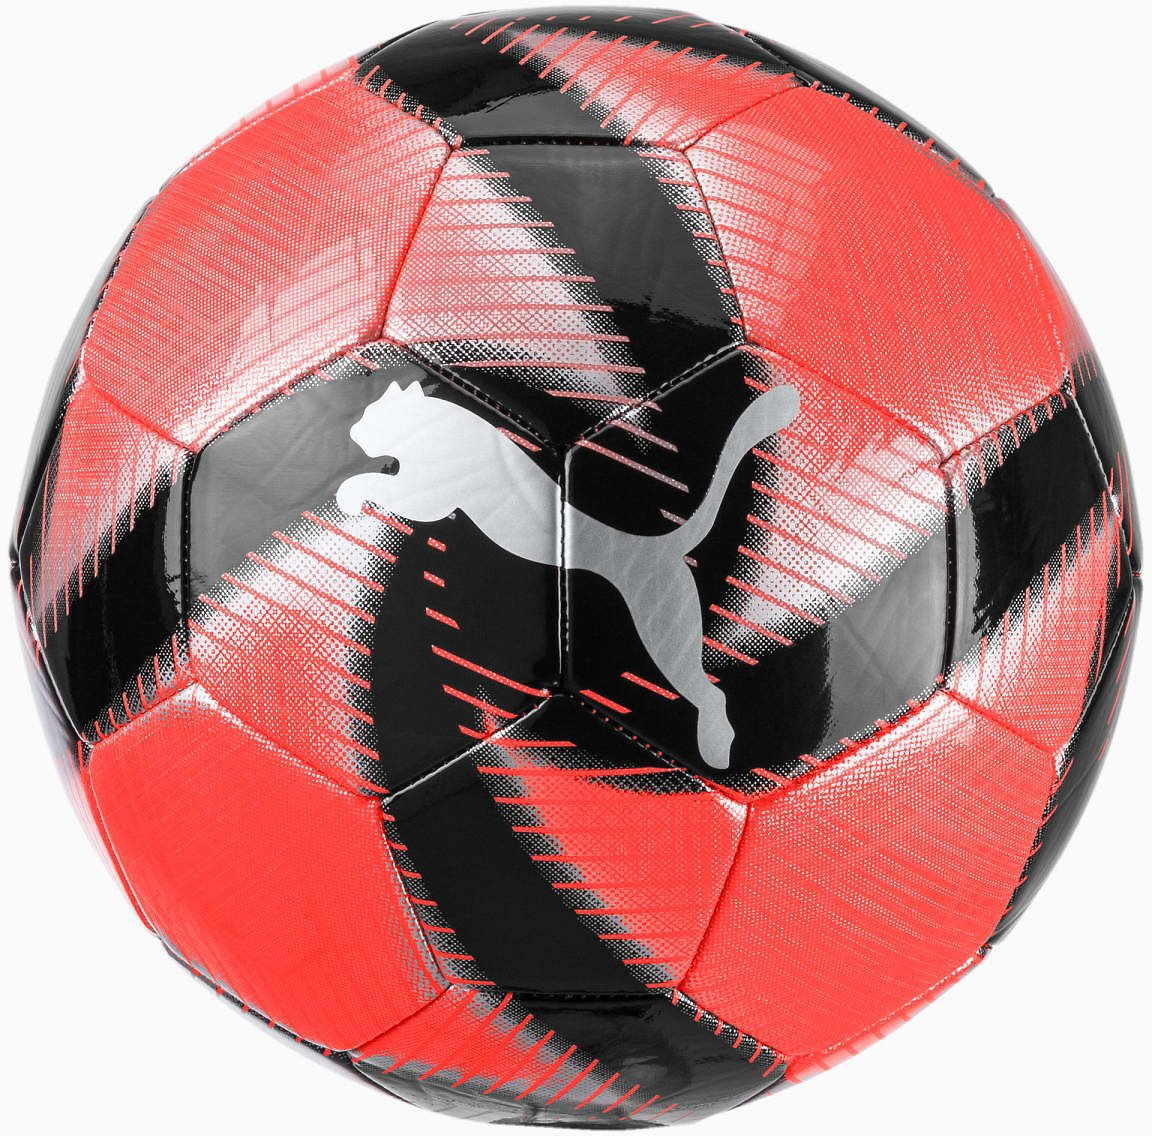 FUTURE Flare Soccer Ball (Mult Colors)